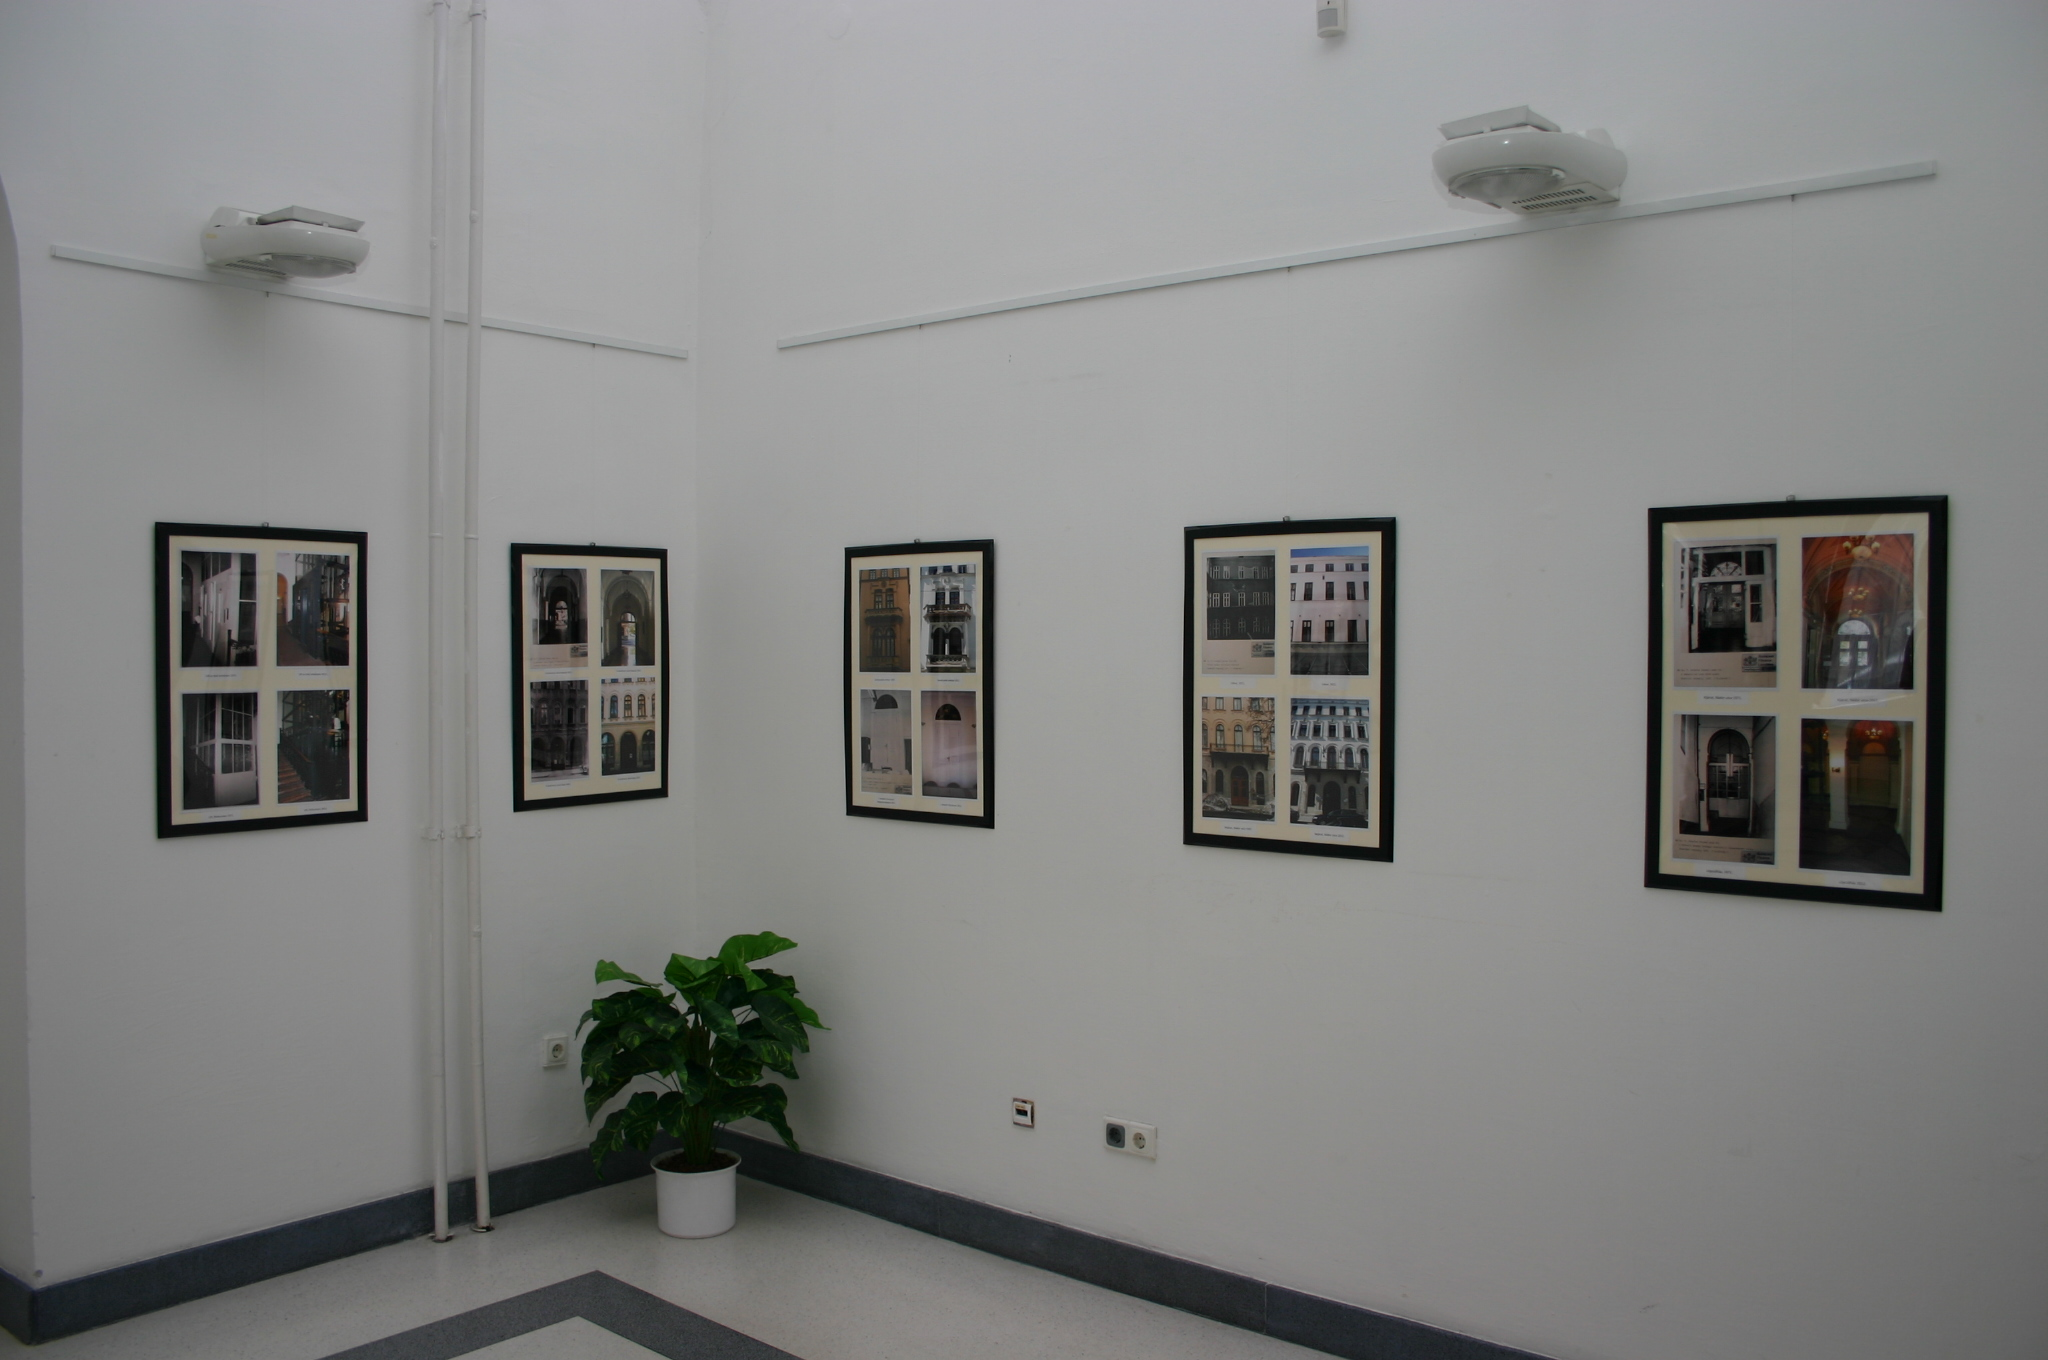 History of the building - exhibition (3).JPG